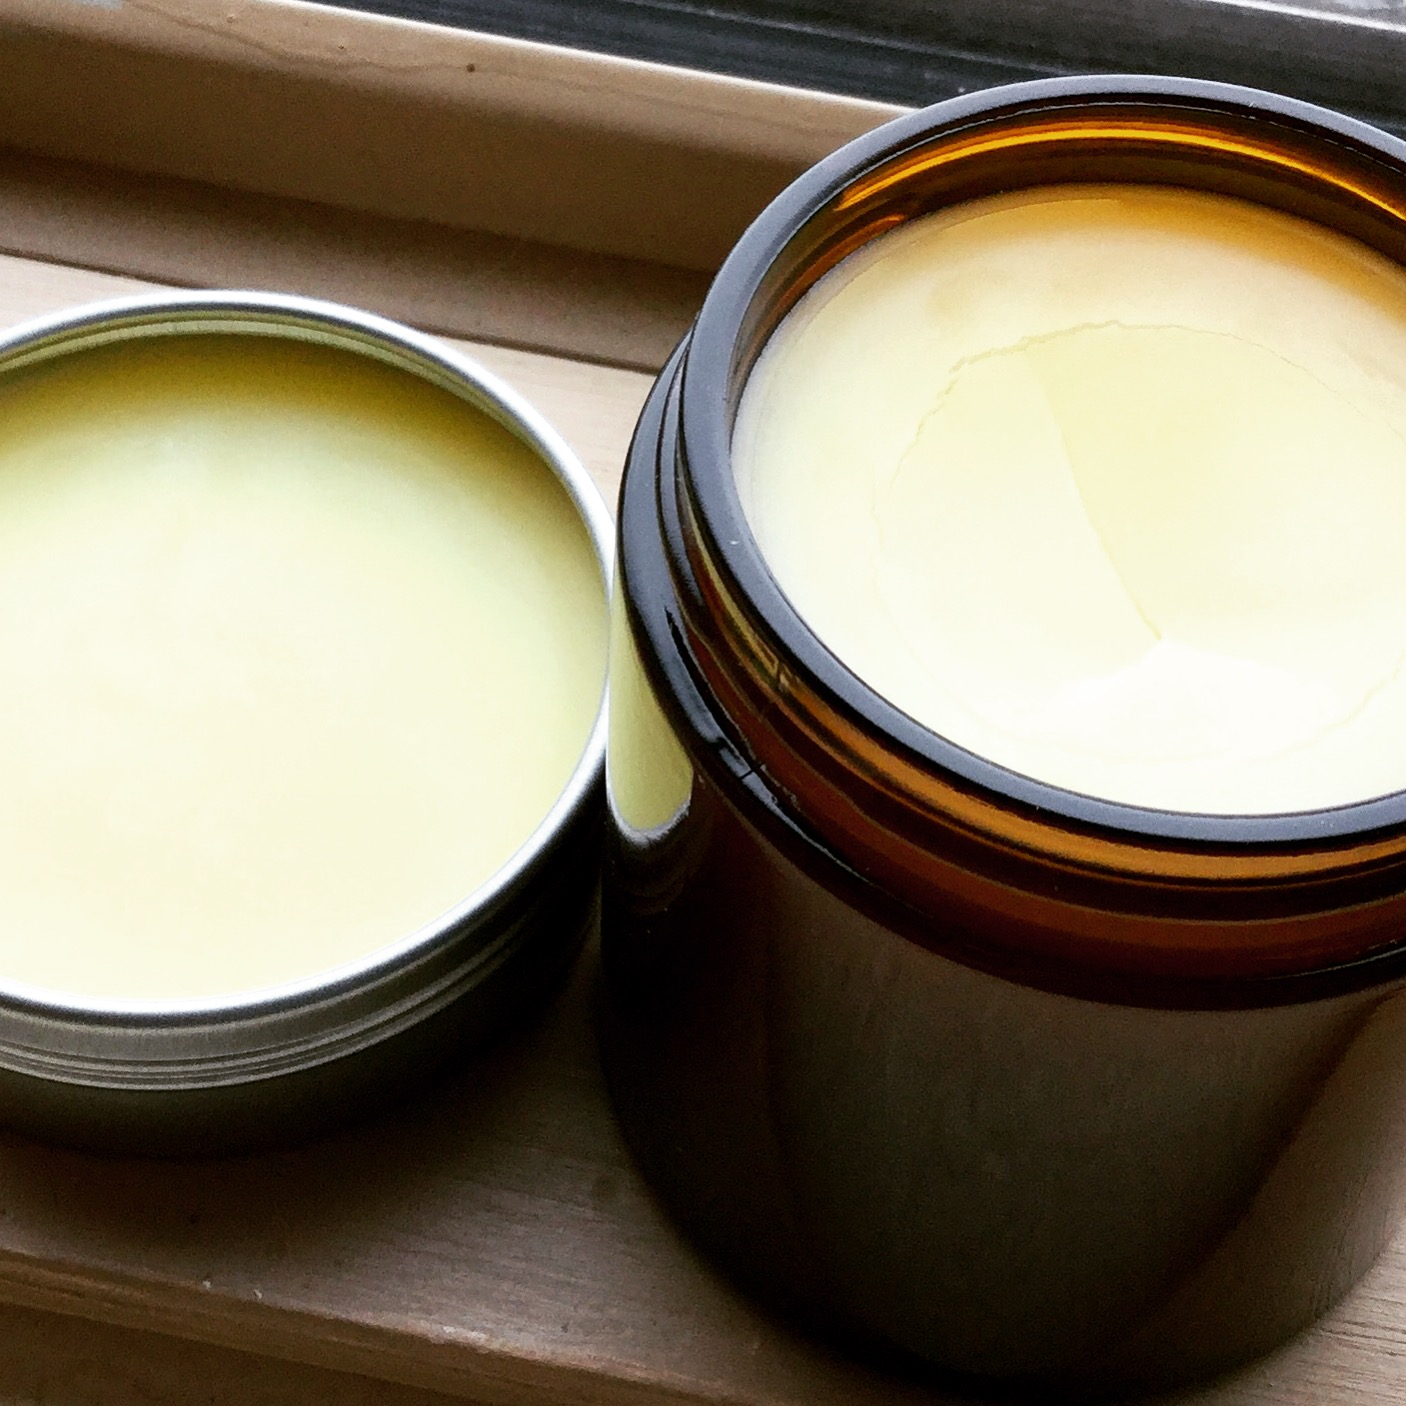 Nothing beats a good homemade salve.